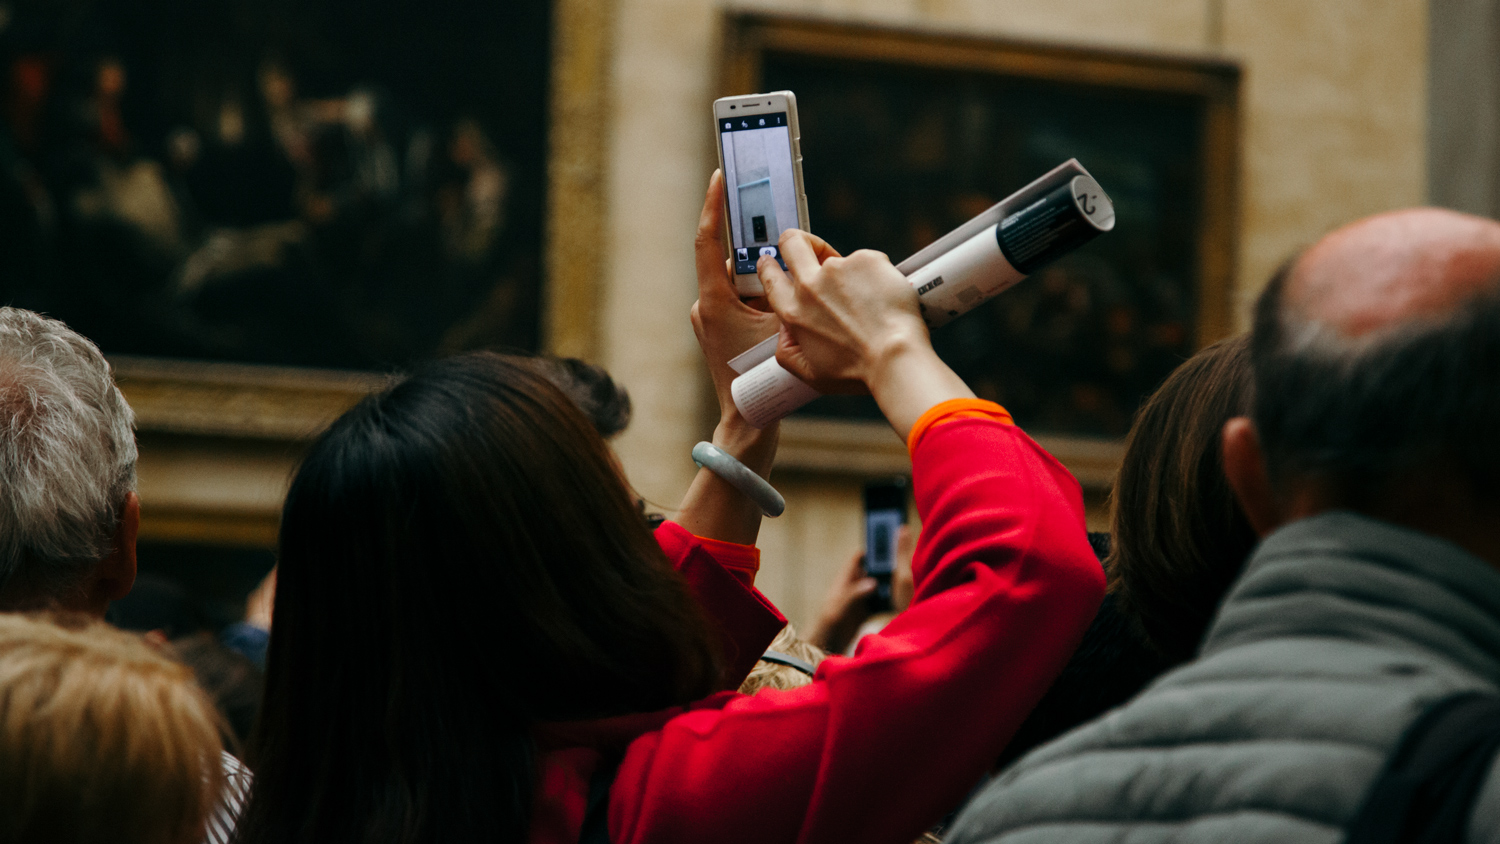 How to Use an Art Gallery Visit to Inspire Your Photography